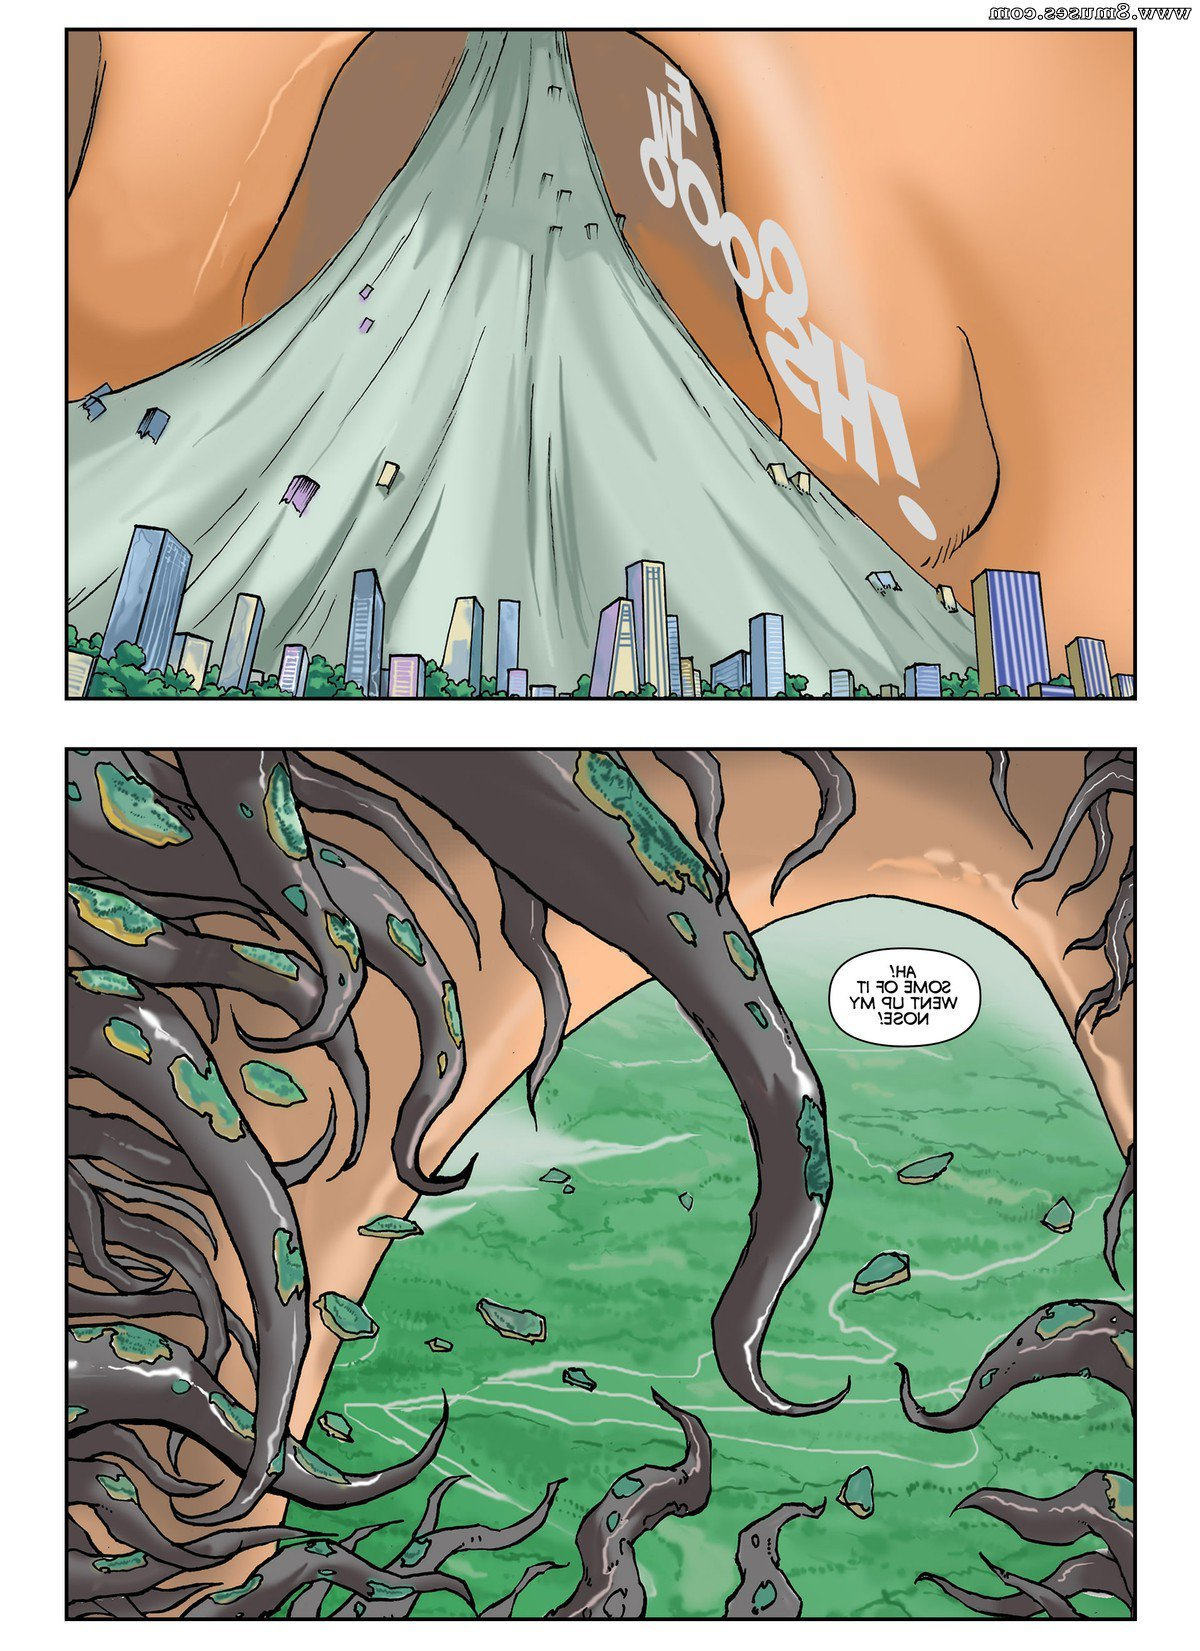 Giantess-Fan-Comics/The-Next-Dimension/Issue-1 The_Next_Dimension_-_Issue_1_16.jpg